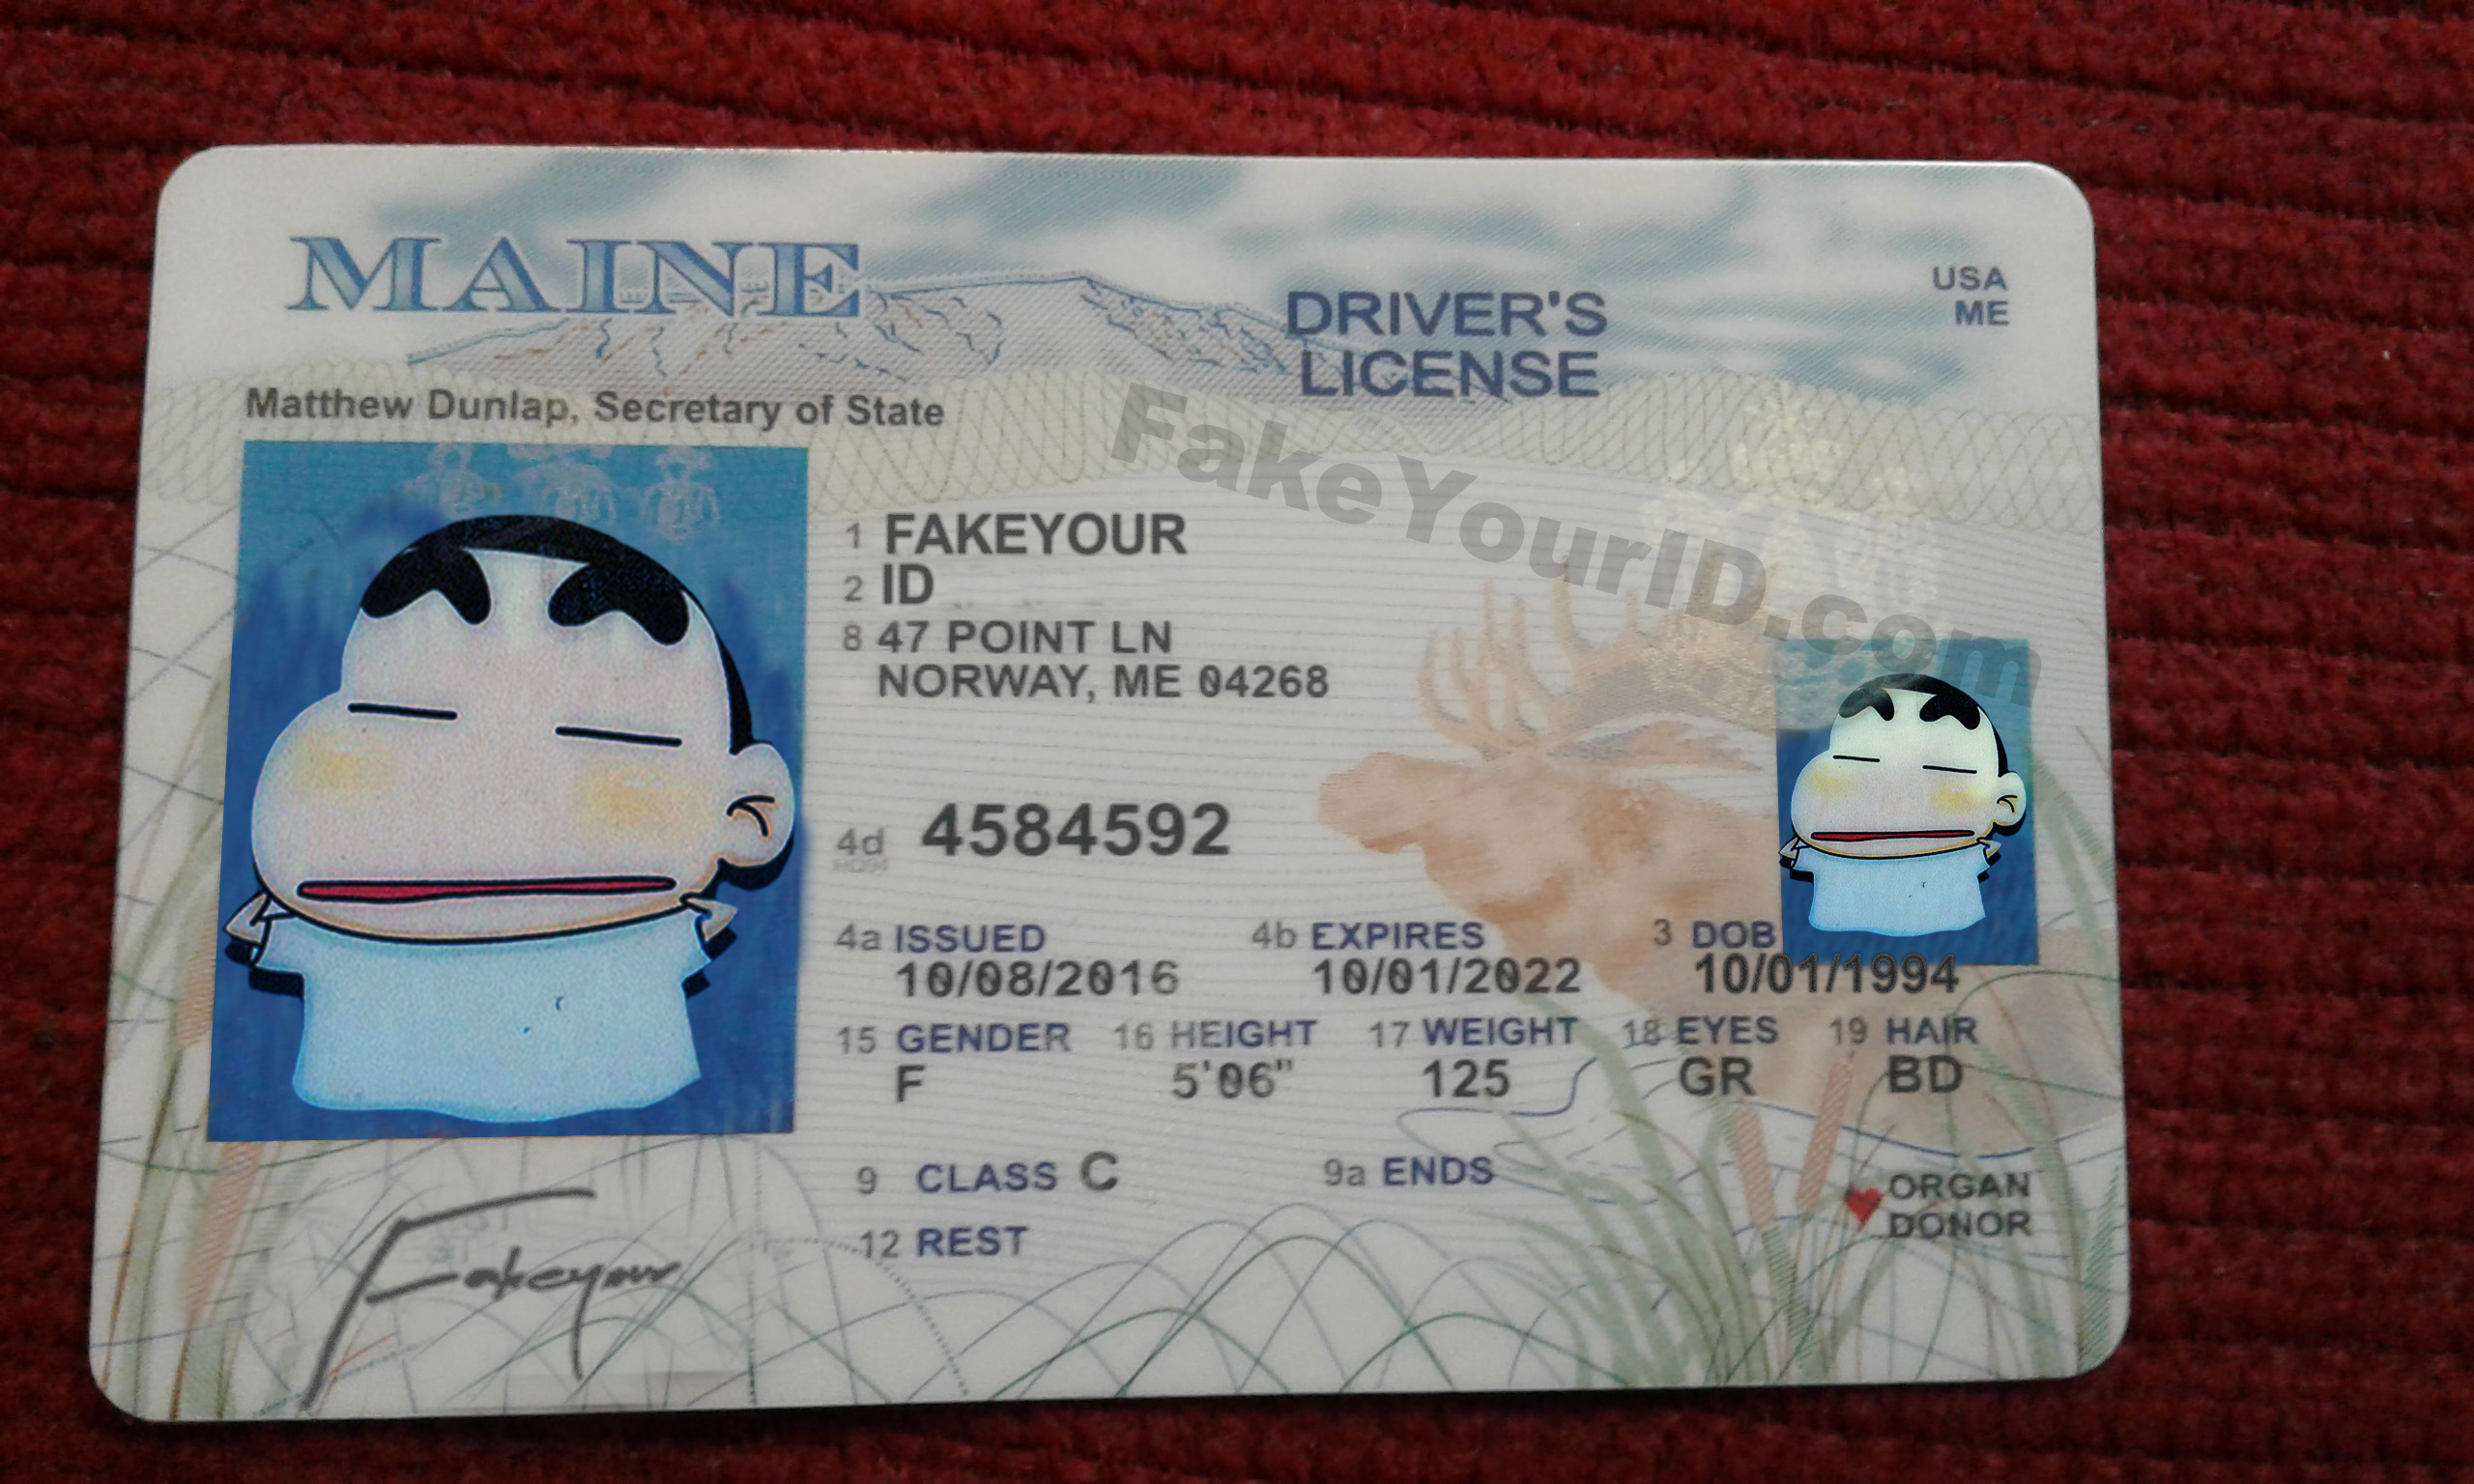 We Ids Fake Premium Buy Maine - Scannable Make Id